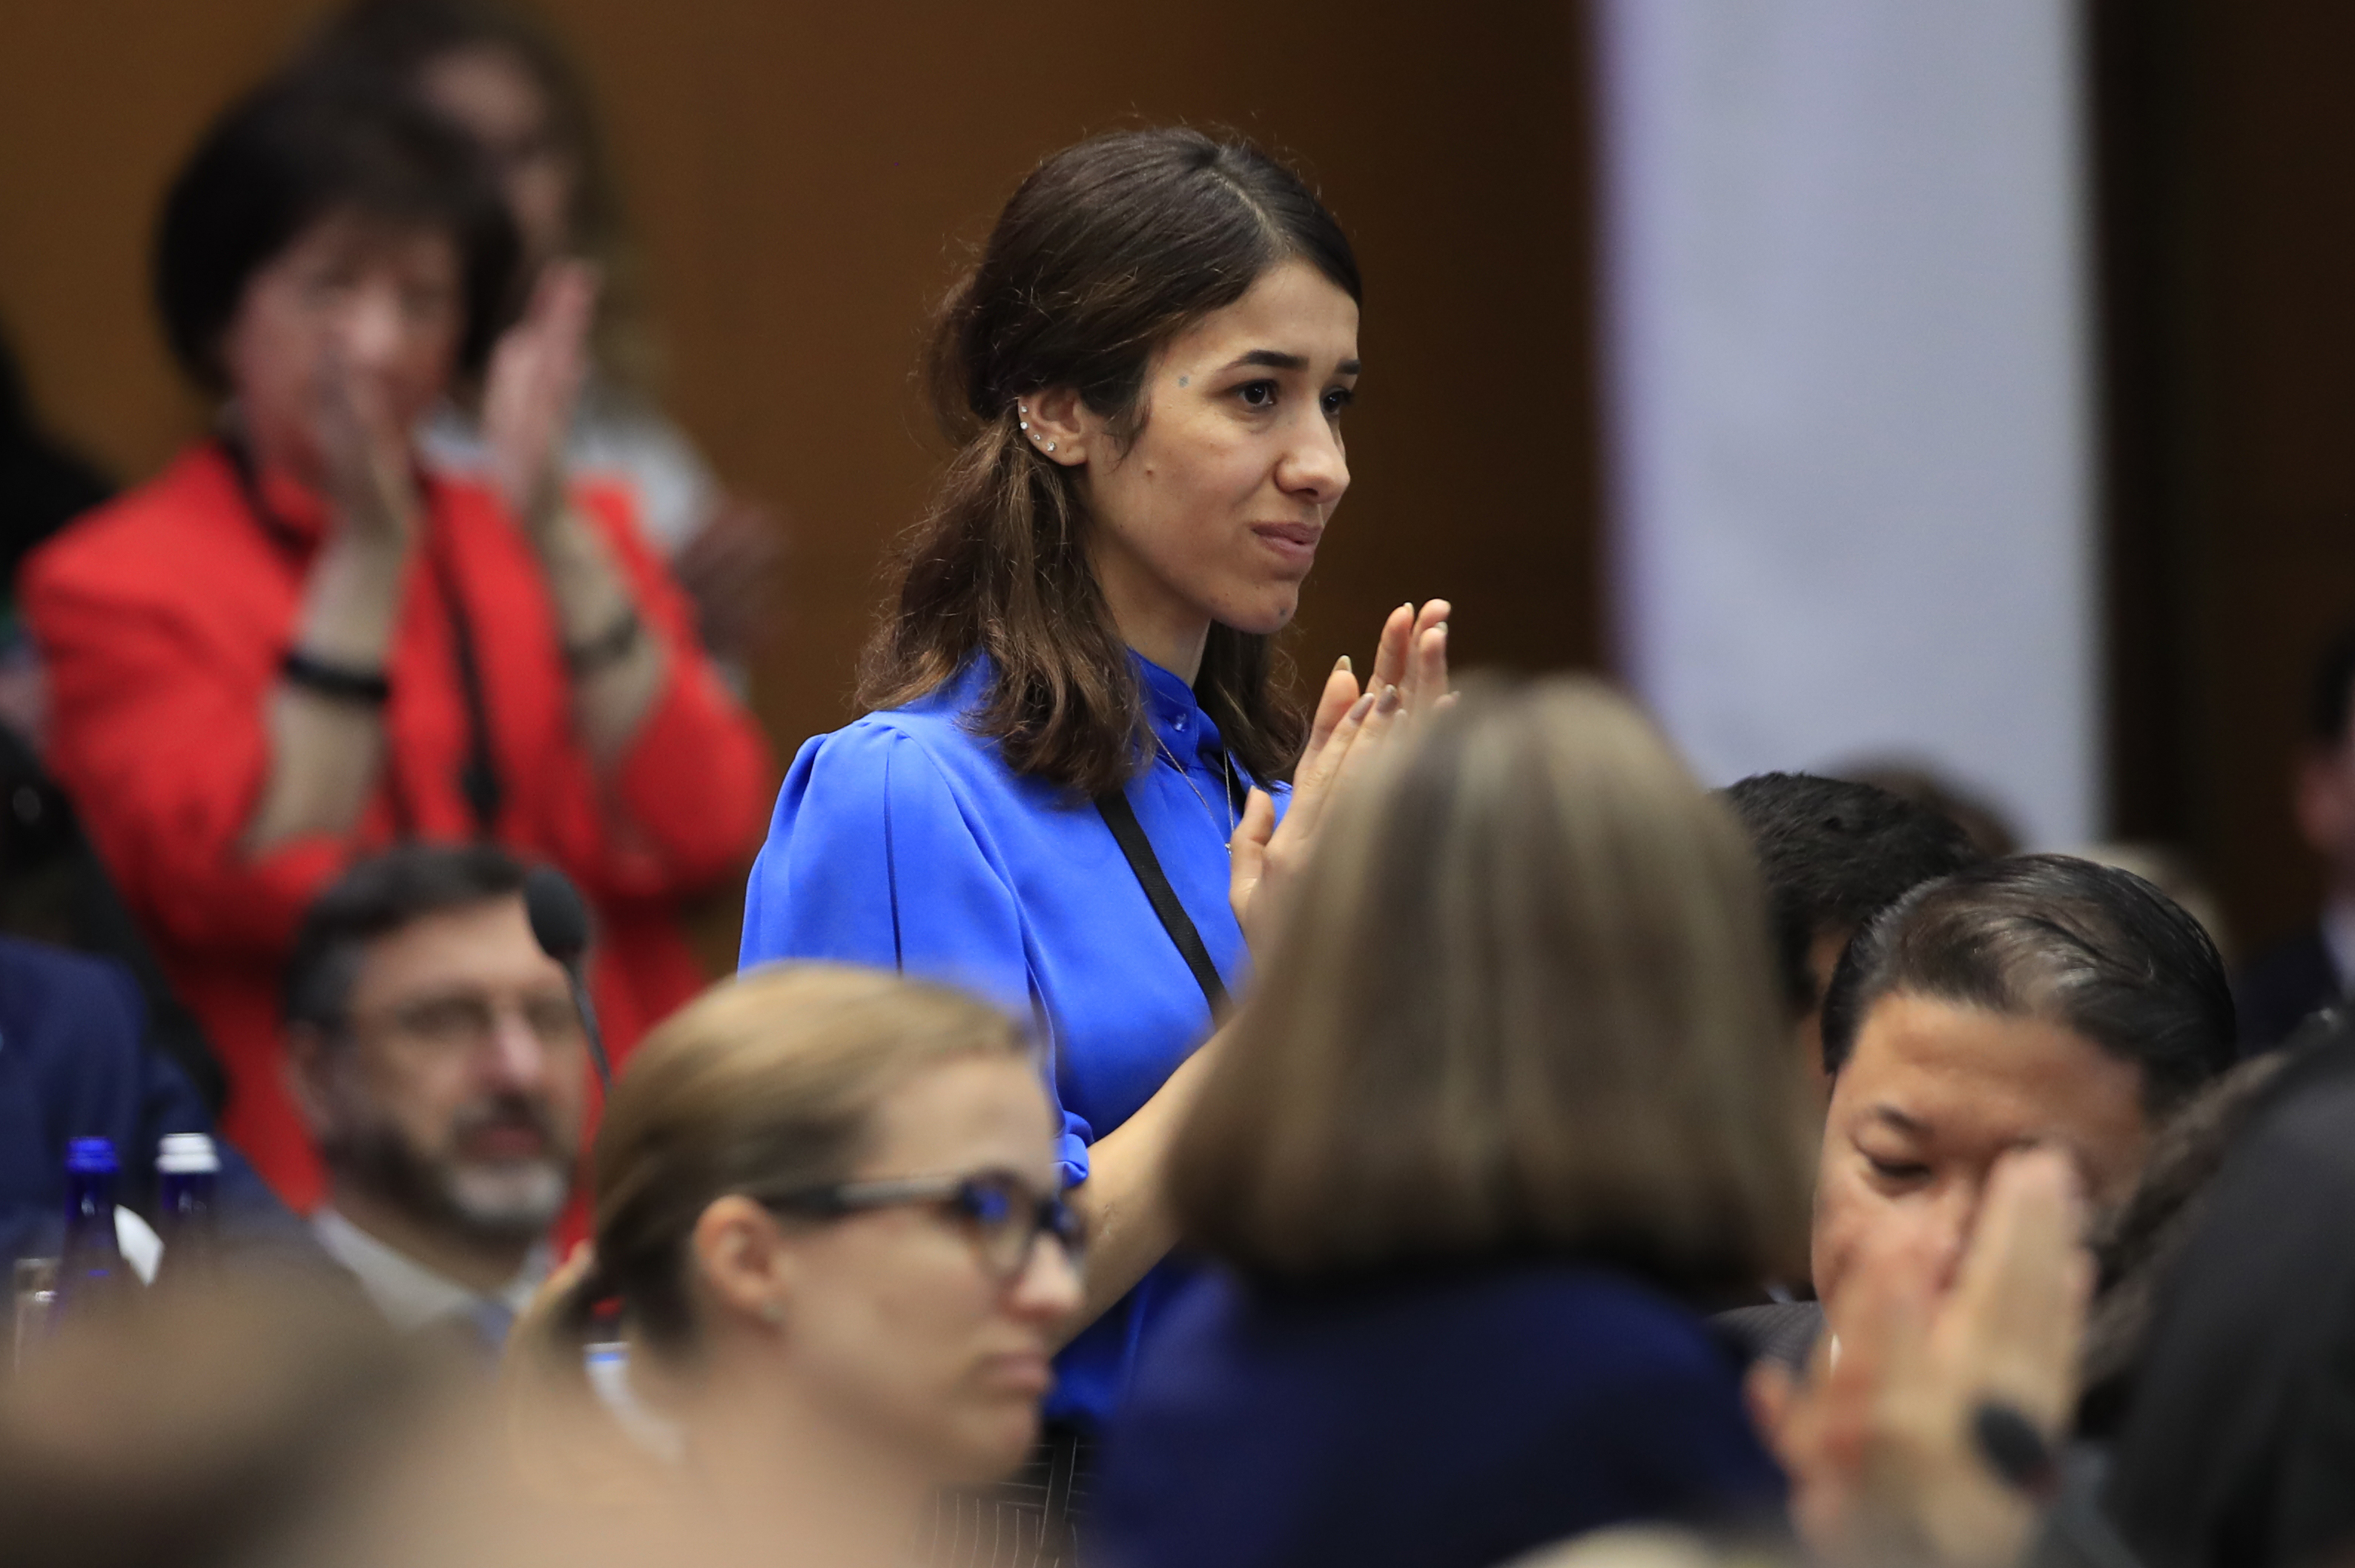 Nadia Murad, a member of the Yazidi religious minority in Iraq and former captive and sex slave of the terrorist group Islamic State, is recognized by Vice President Mike Pence during a speech at the State Department, July 26, 2018.